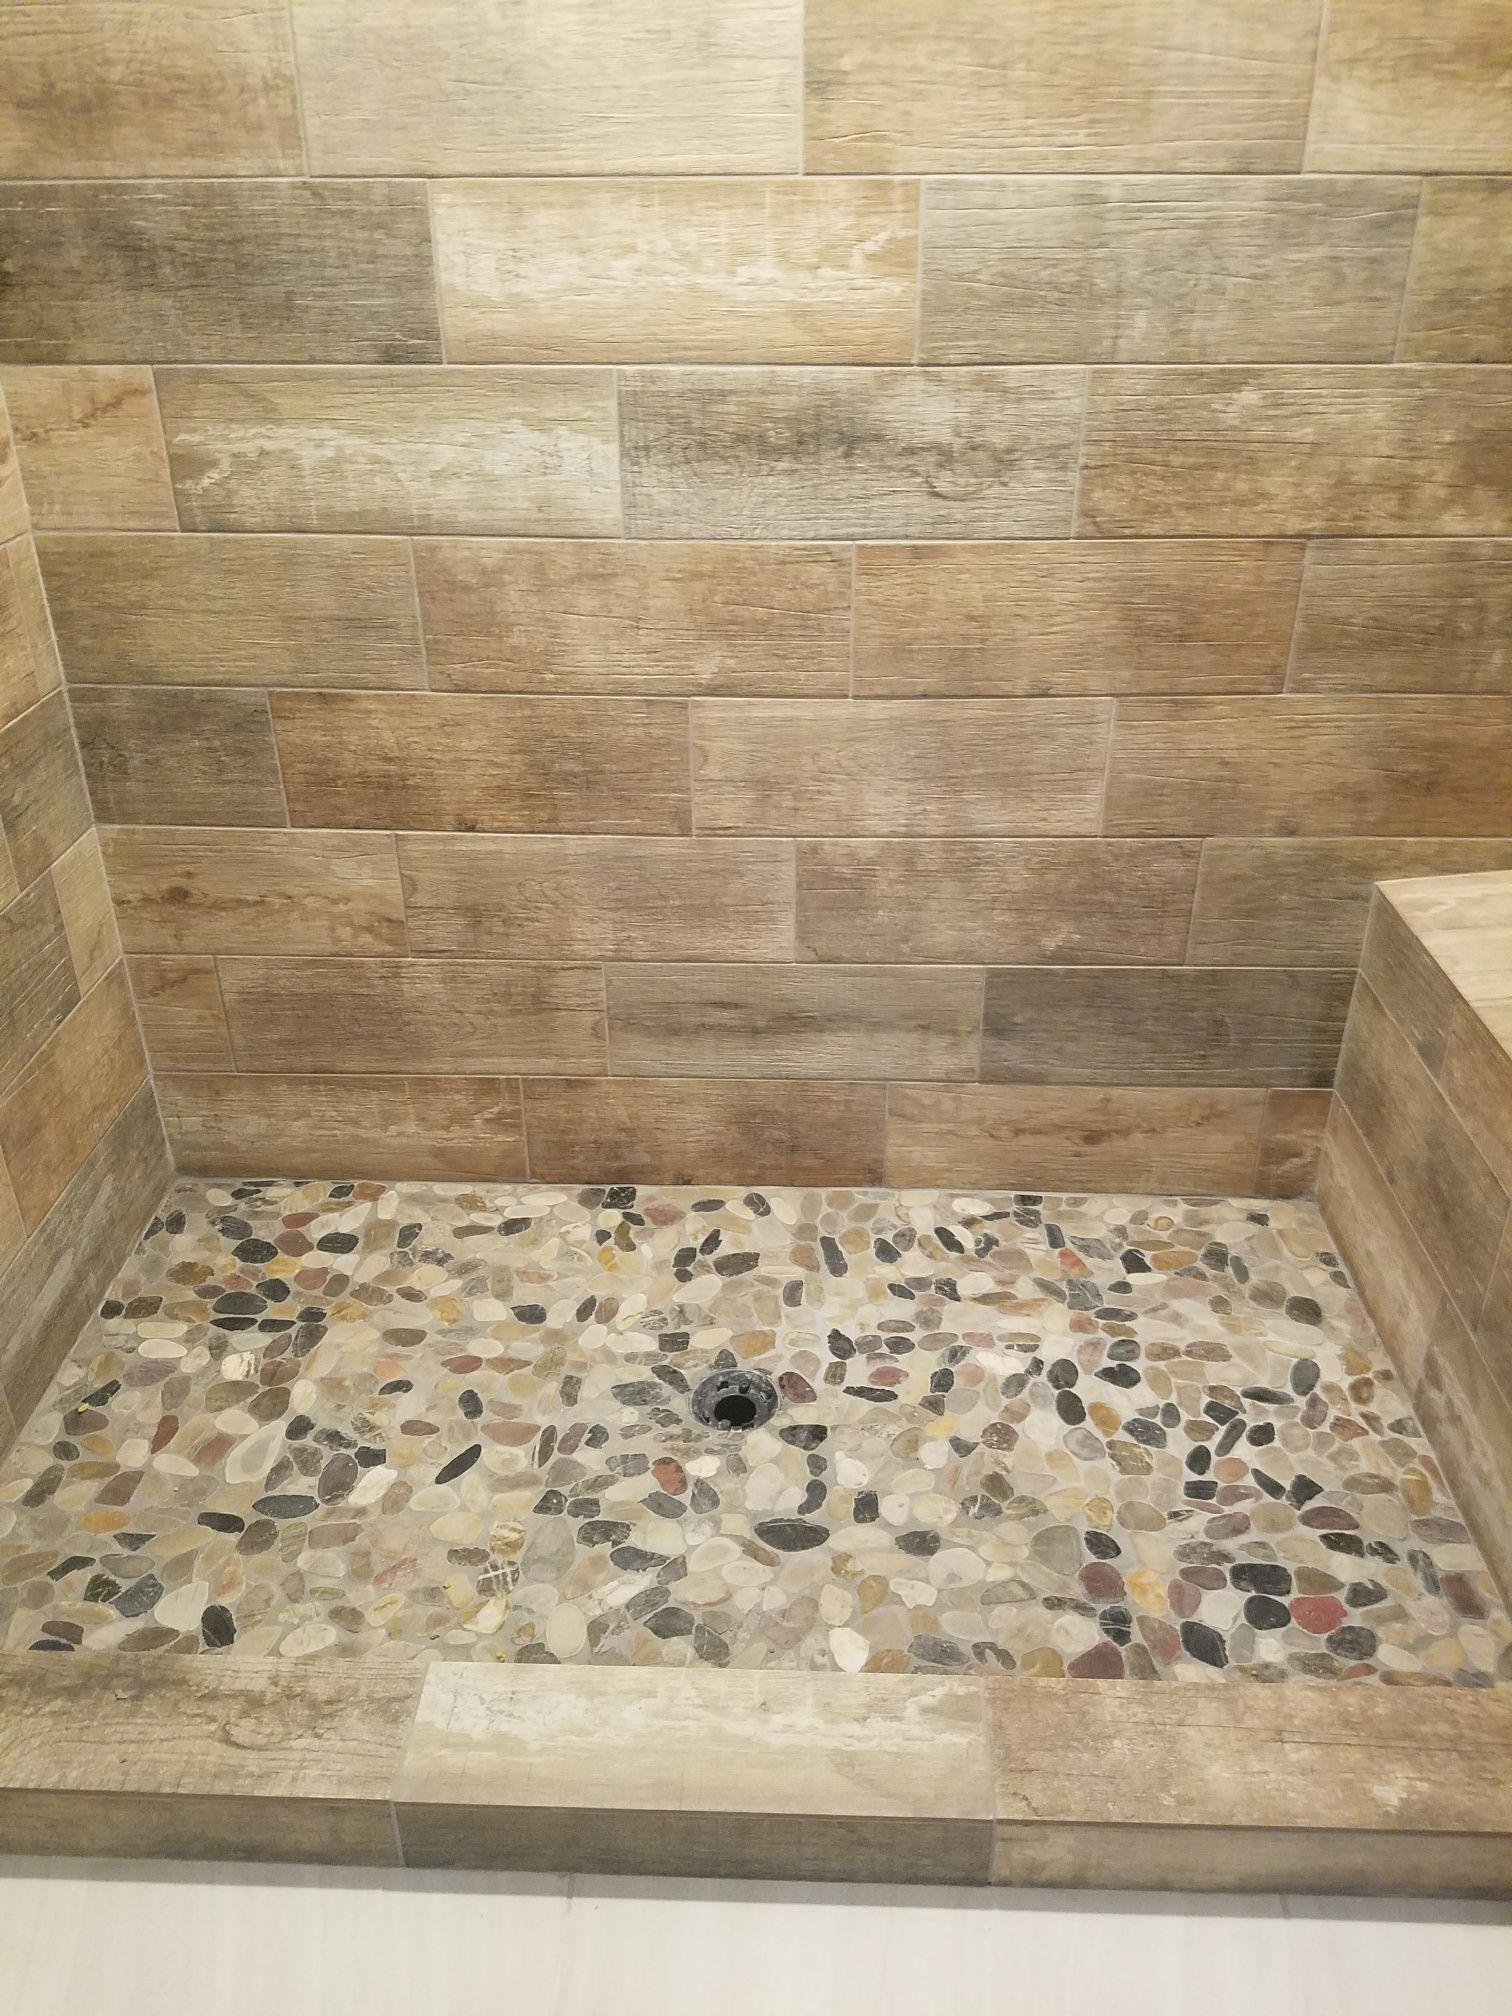 Wood Tile Shower Walls With River Rock Floor In Finished Basement Bathroom Wood Tile Shower Basement Bathroom River Rock Floor